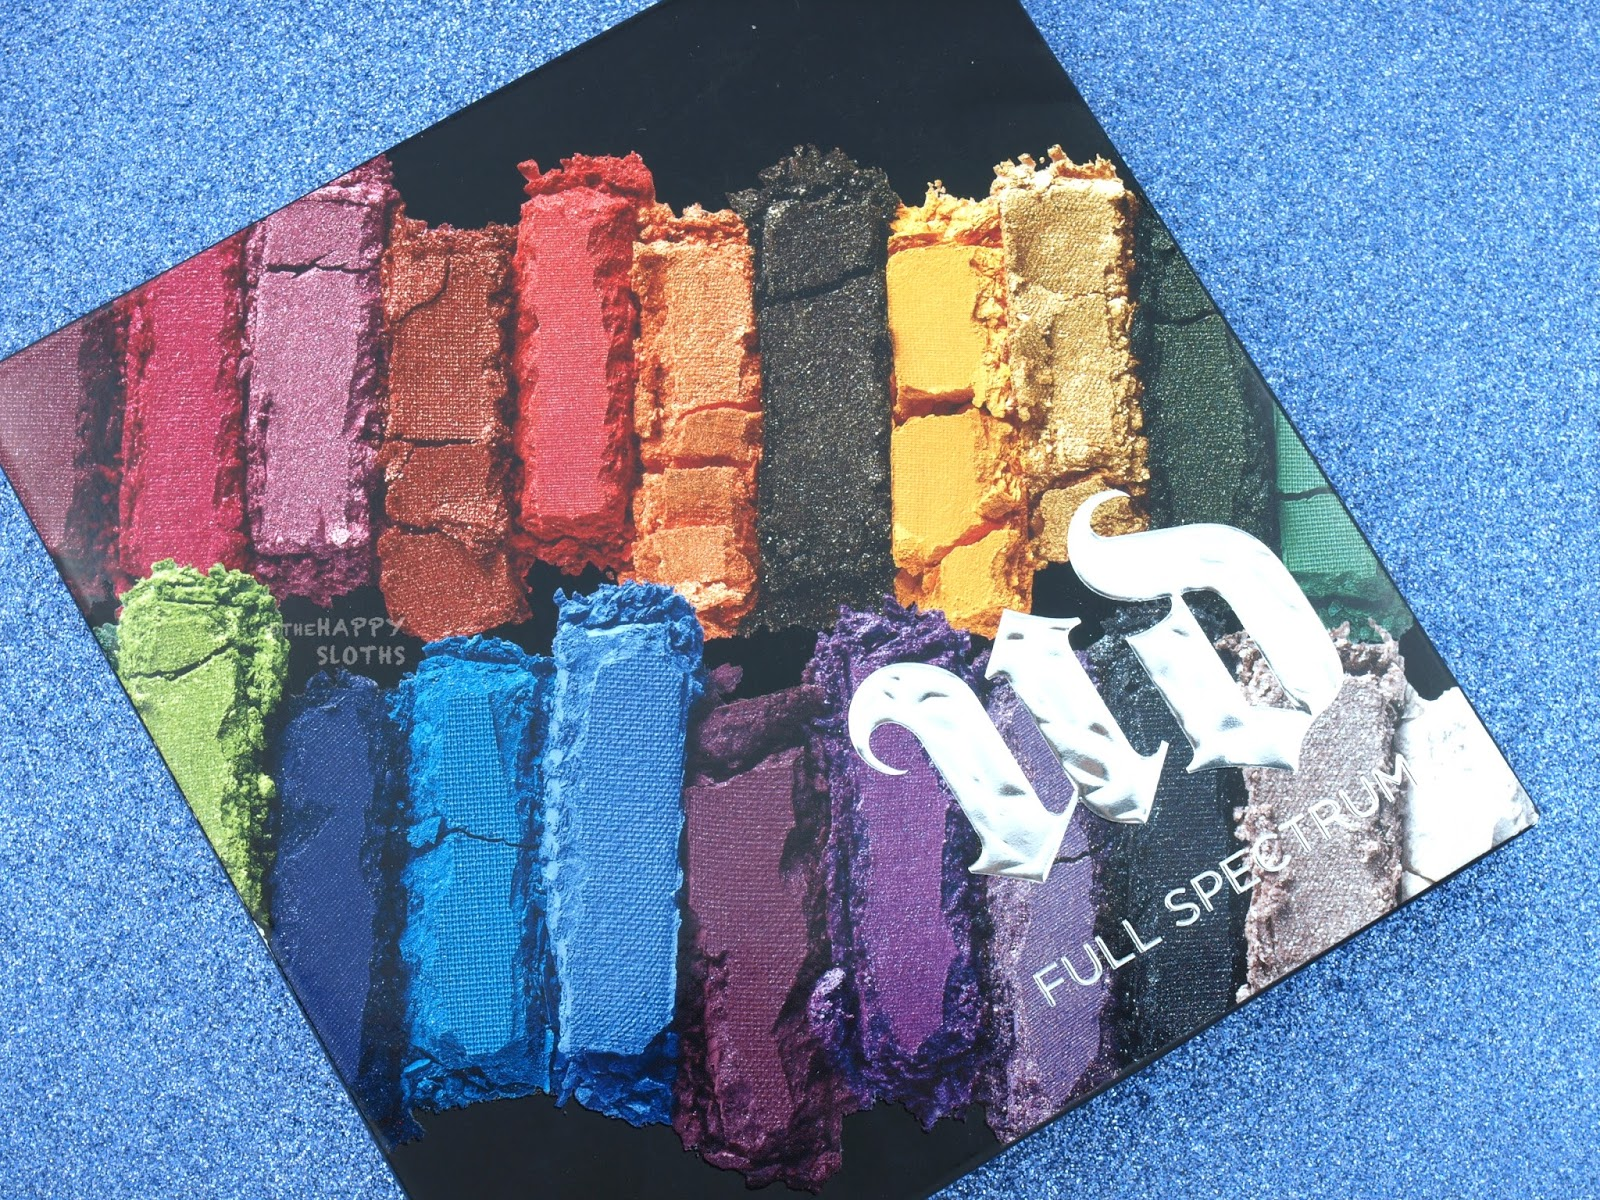 Urban Decay Full Spectrum Eyeshadow Palette Review and Swatches